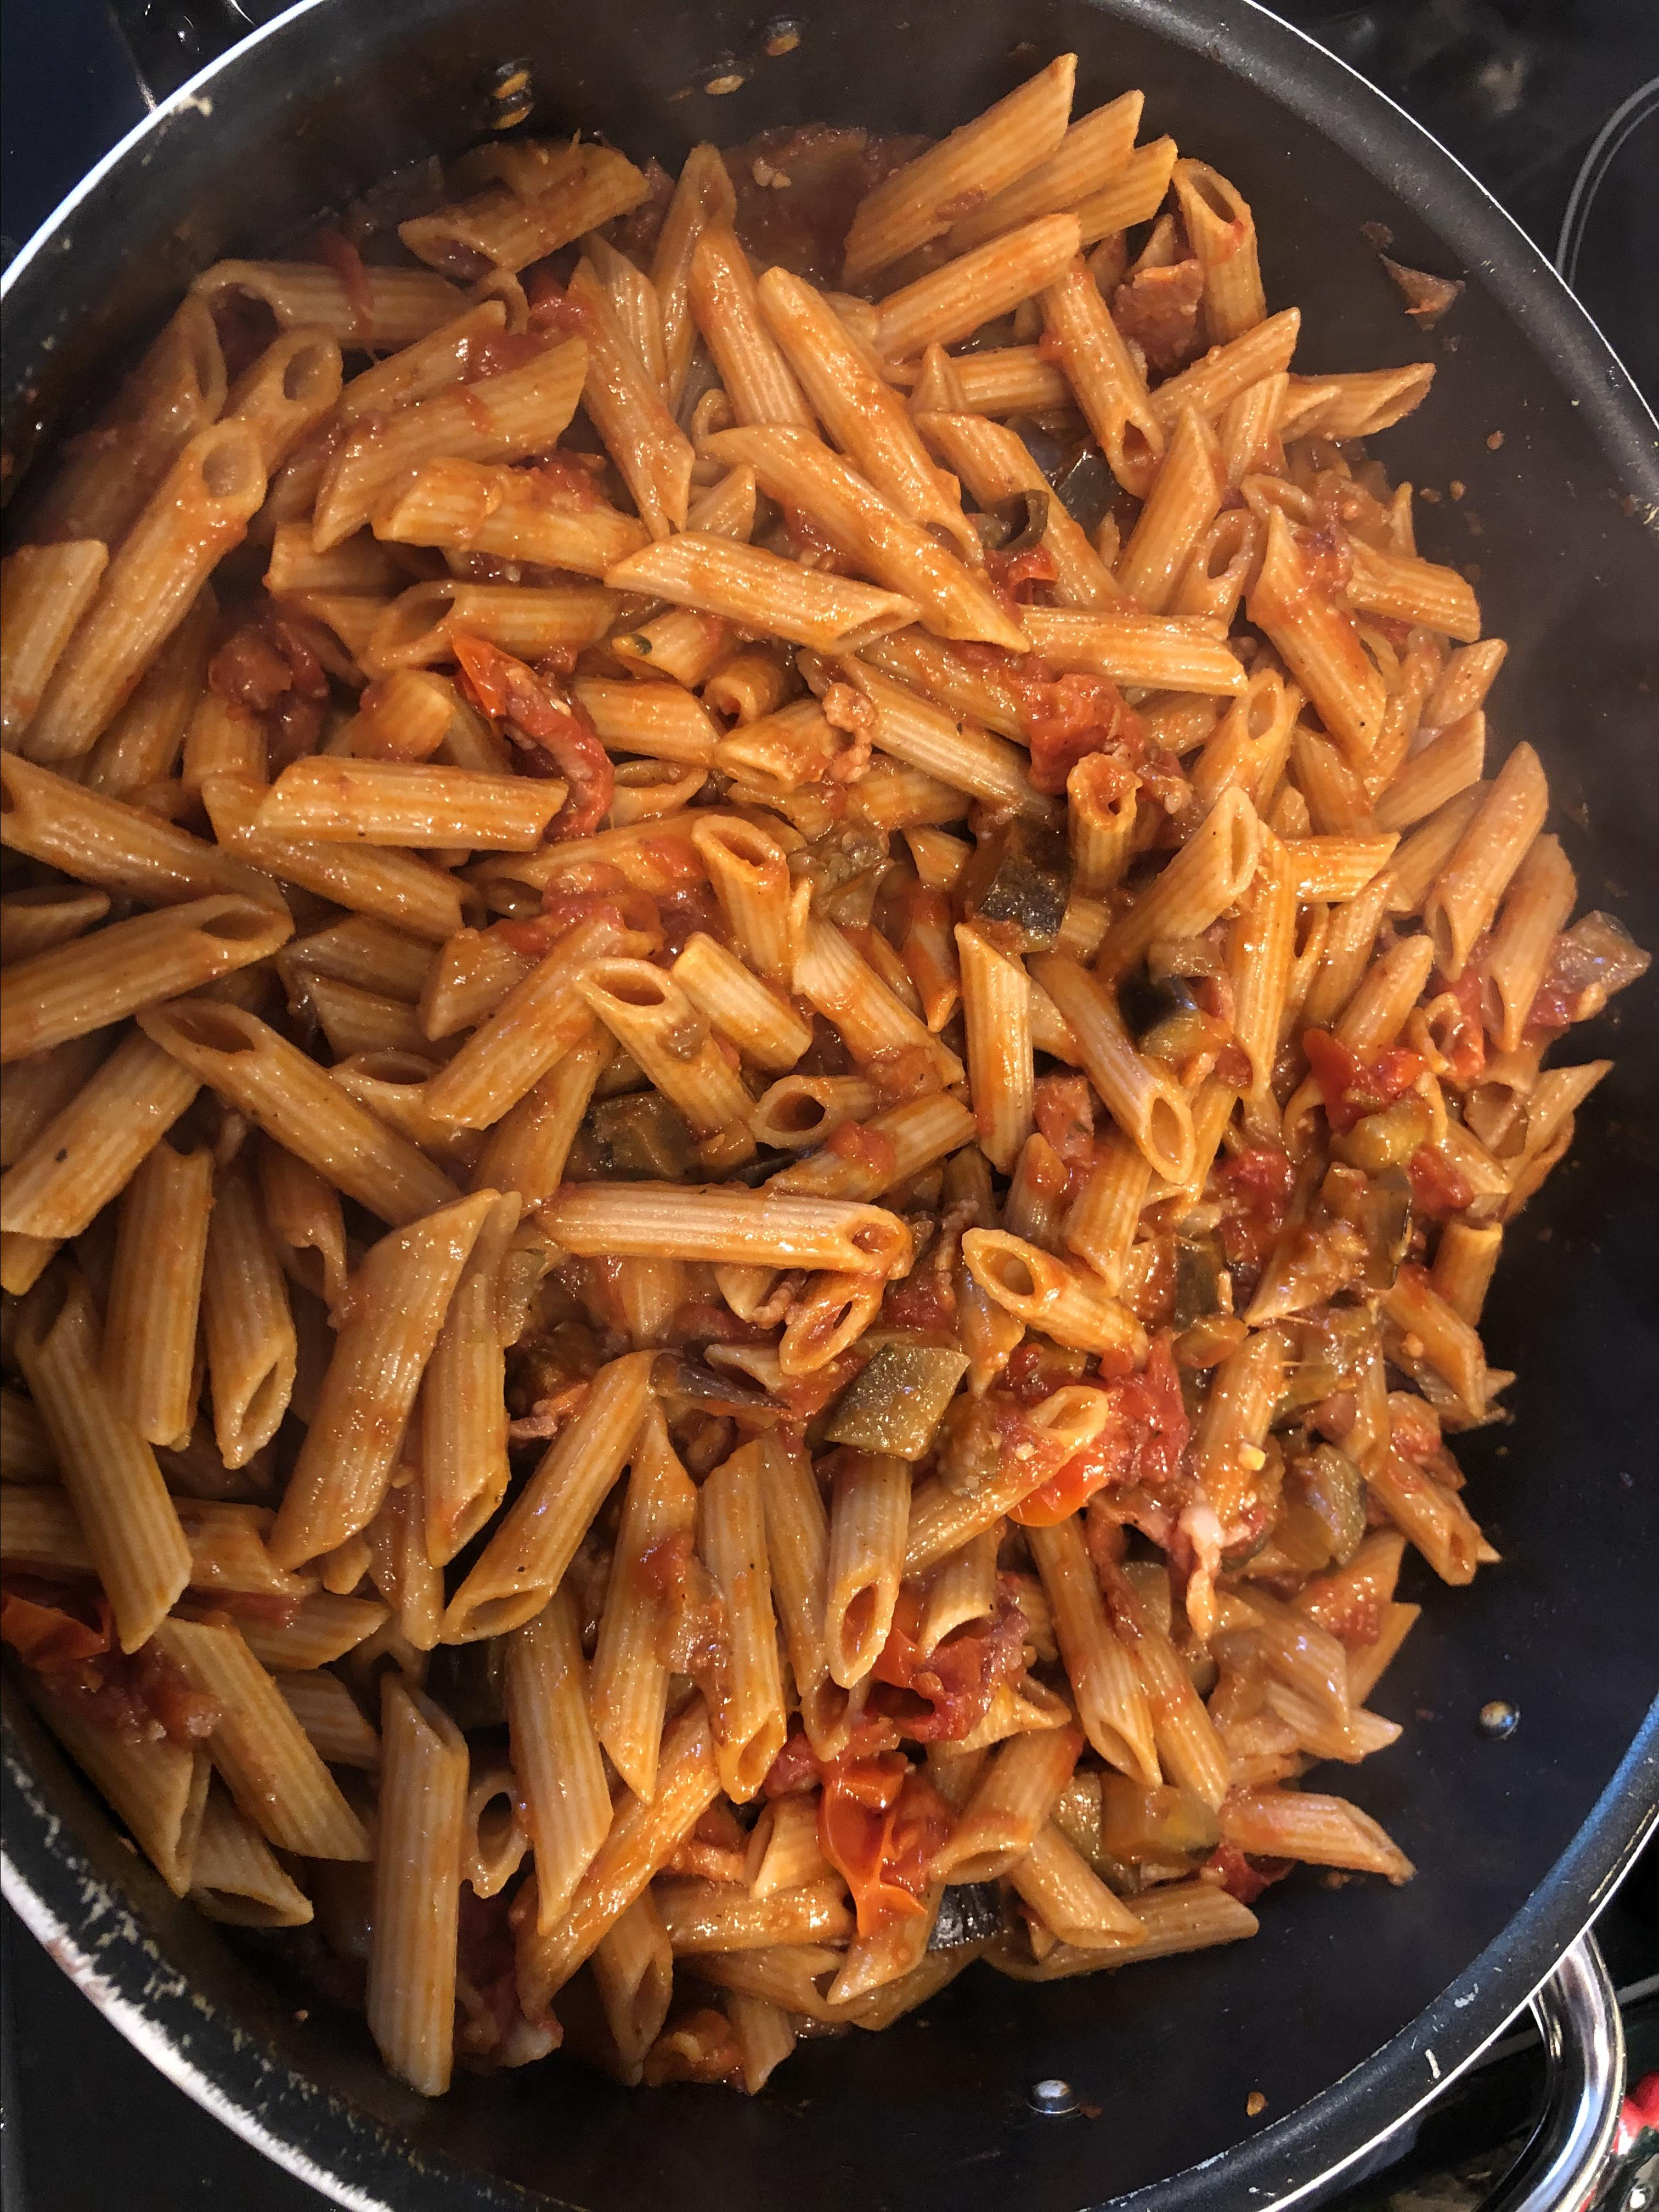 Spicy Eggplant and Pasta with Pancetta janc